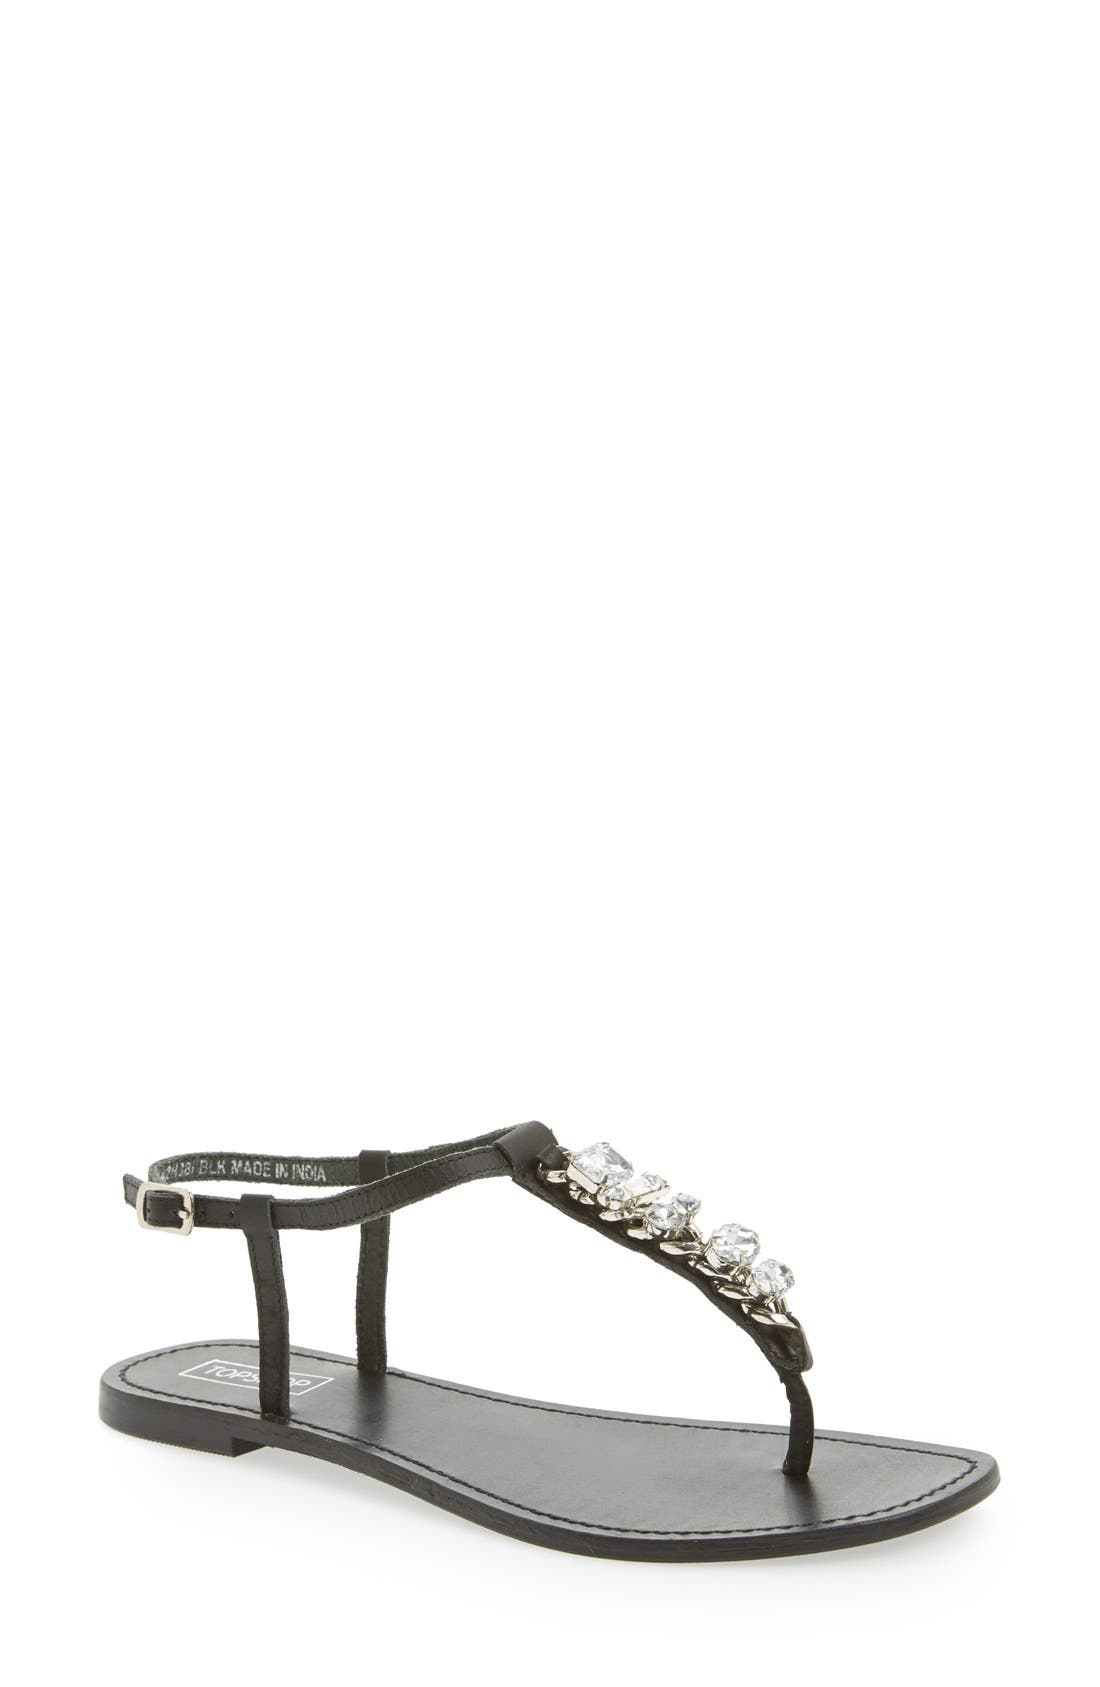 Alternate Image 1 Selected - Topshop 'Hotter' Embellished T-Strap Sandal